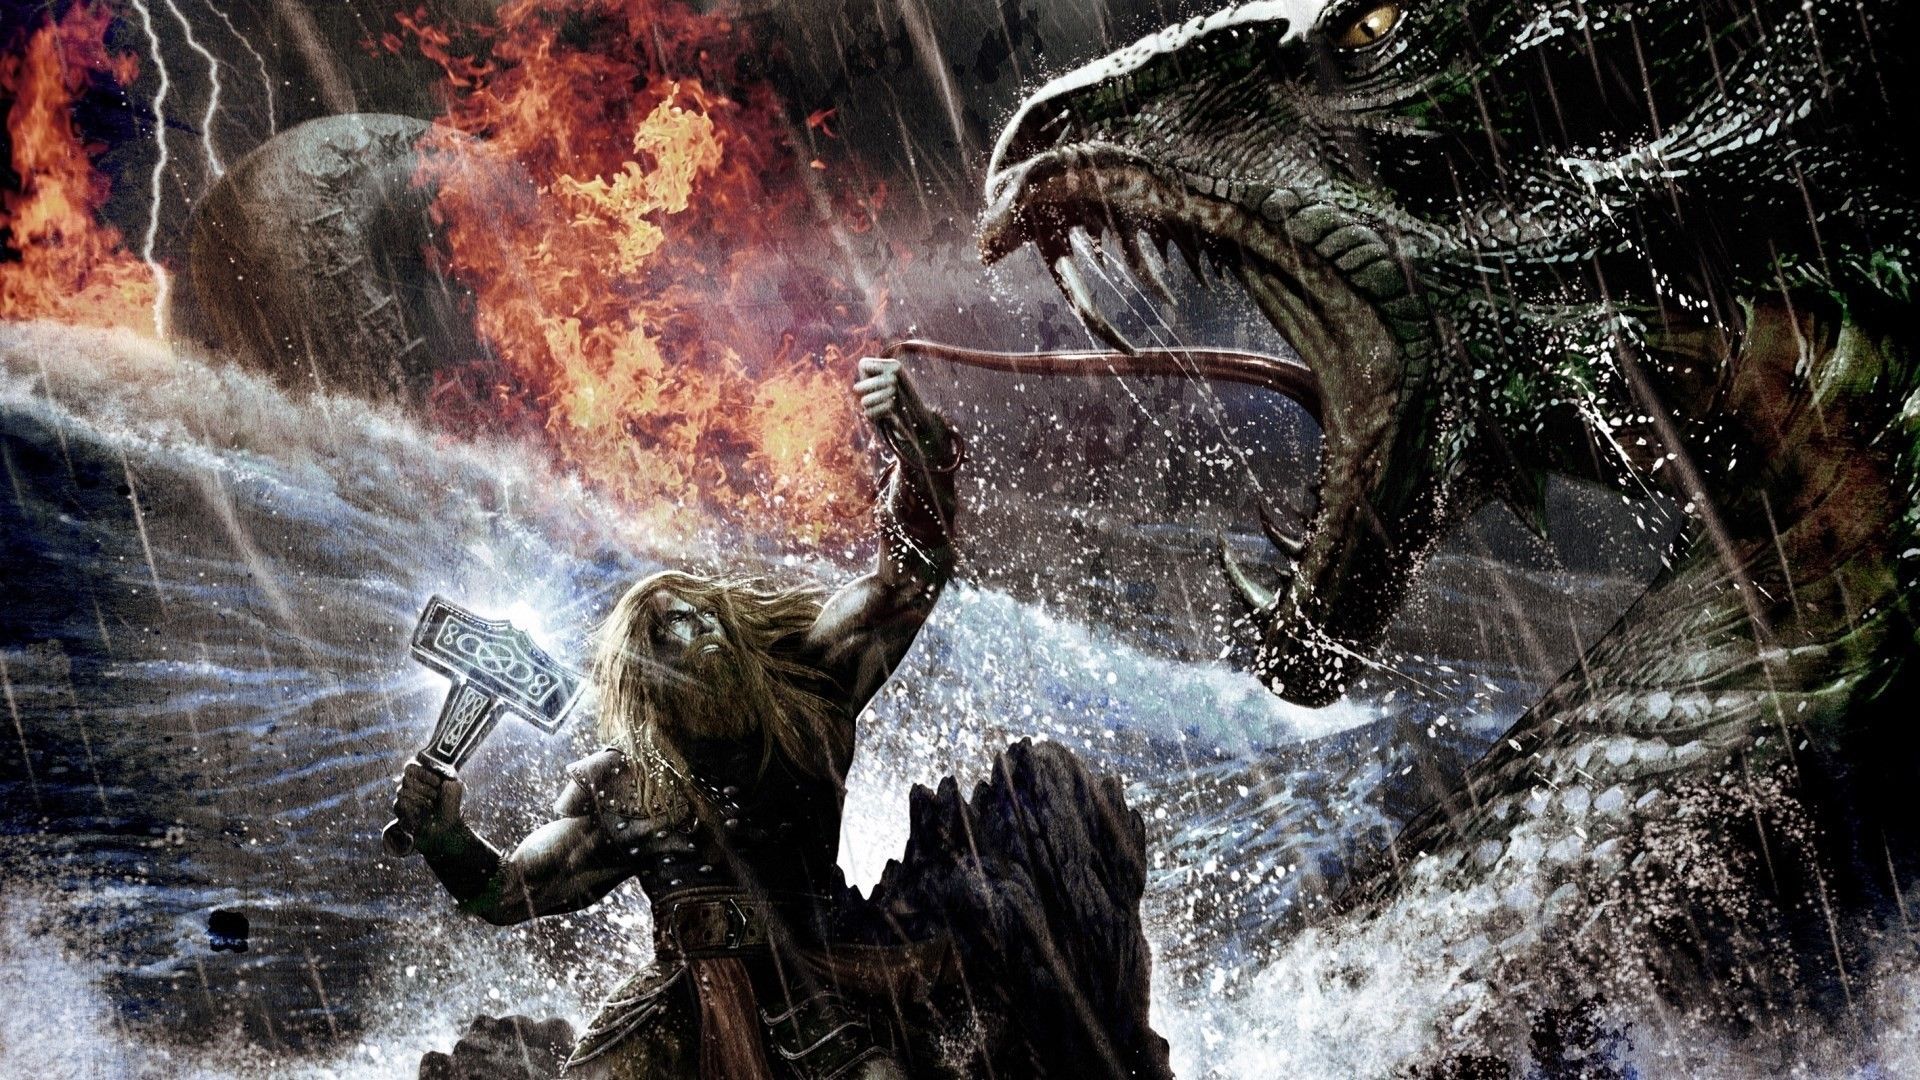 Viking kills the dragon wallpapers and images – wallpapers, pictures .